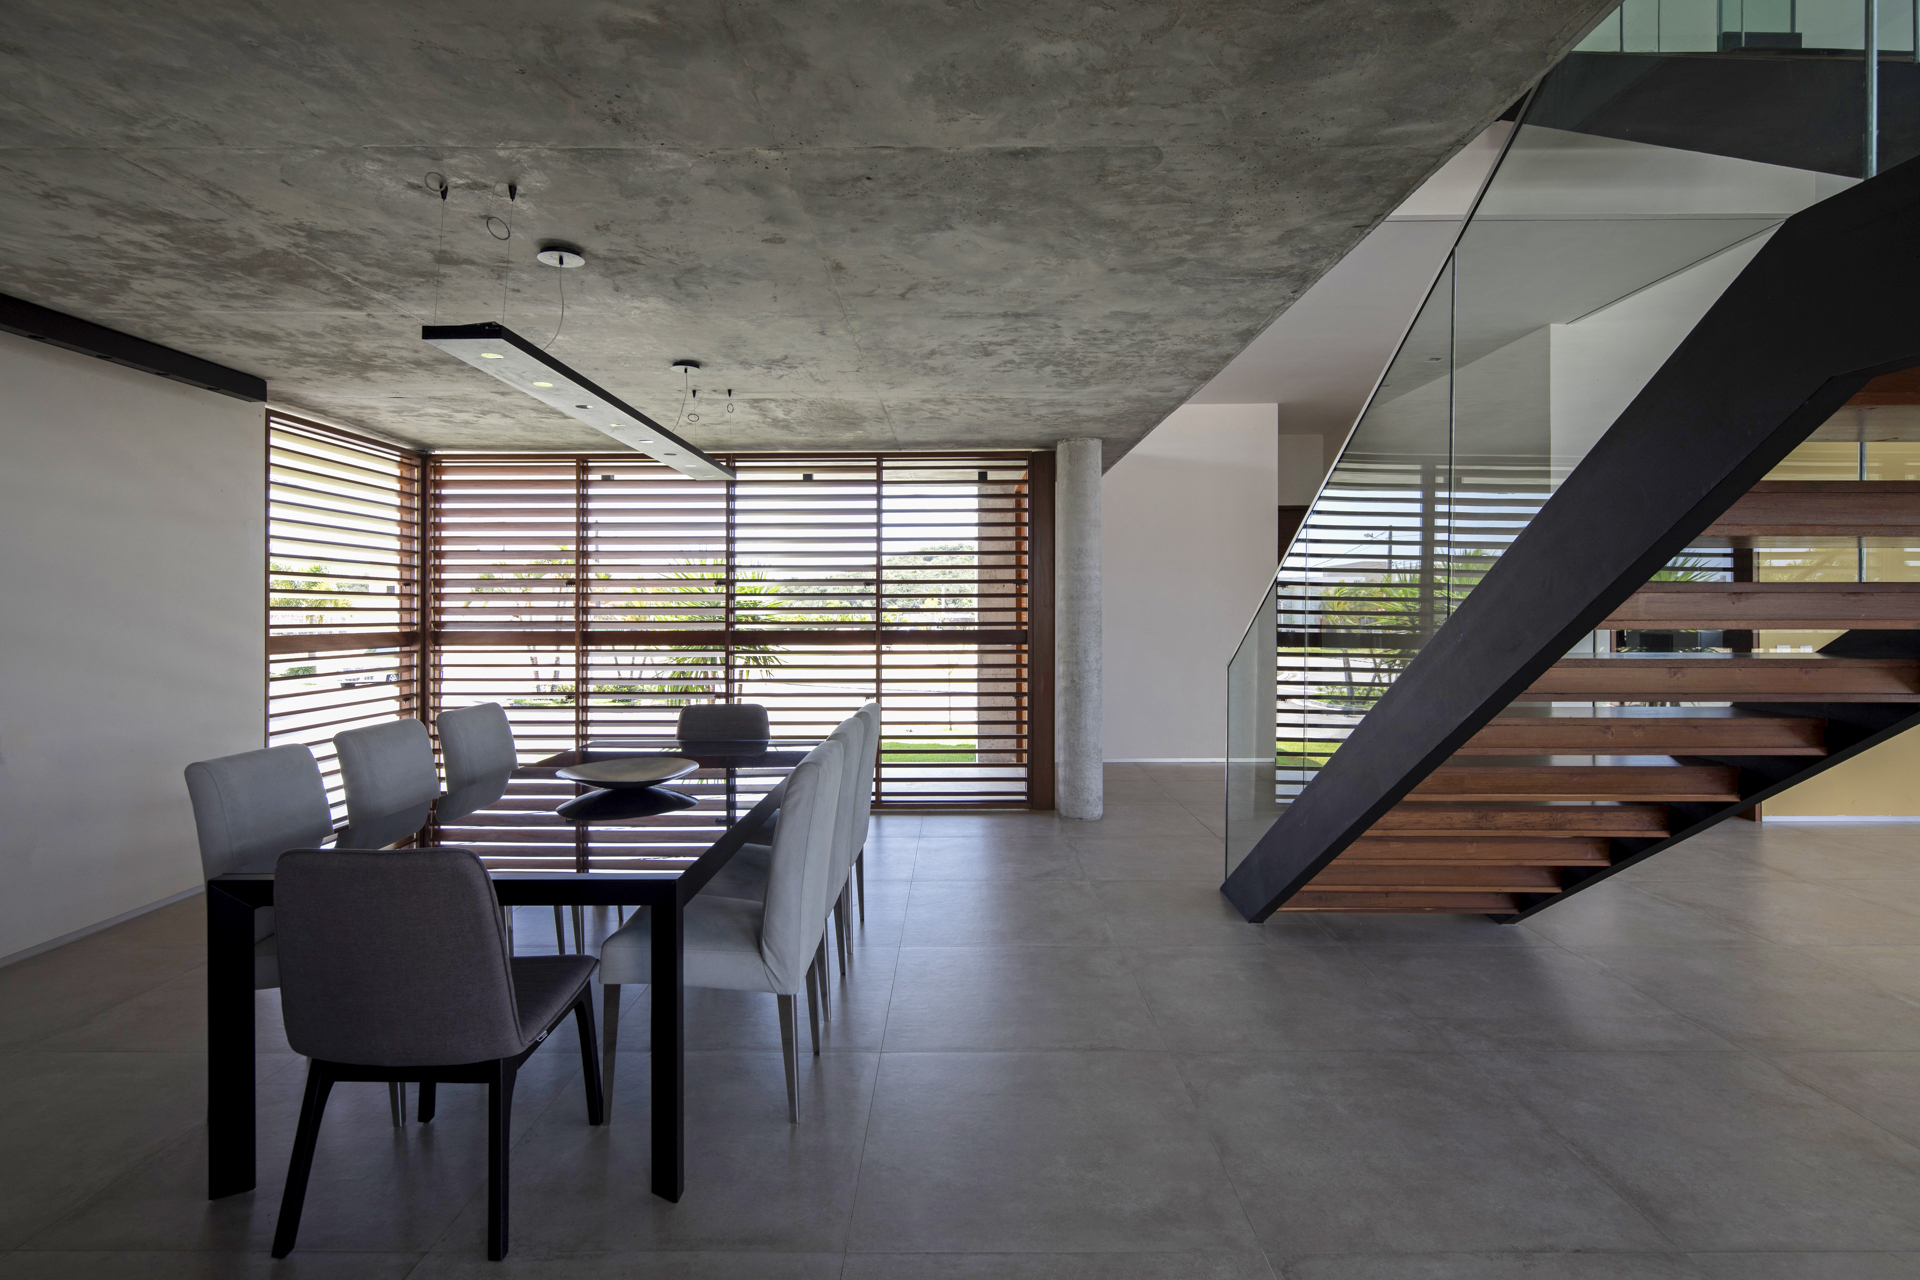 5_CASA_IF_-_Martins_Lucena_Arquitetos-20.jpg